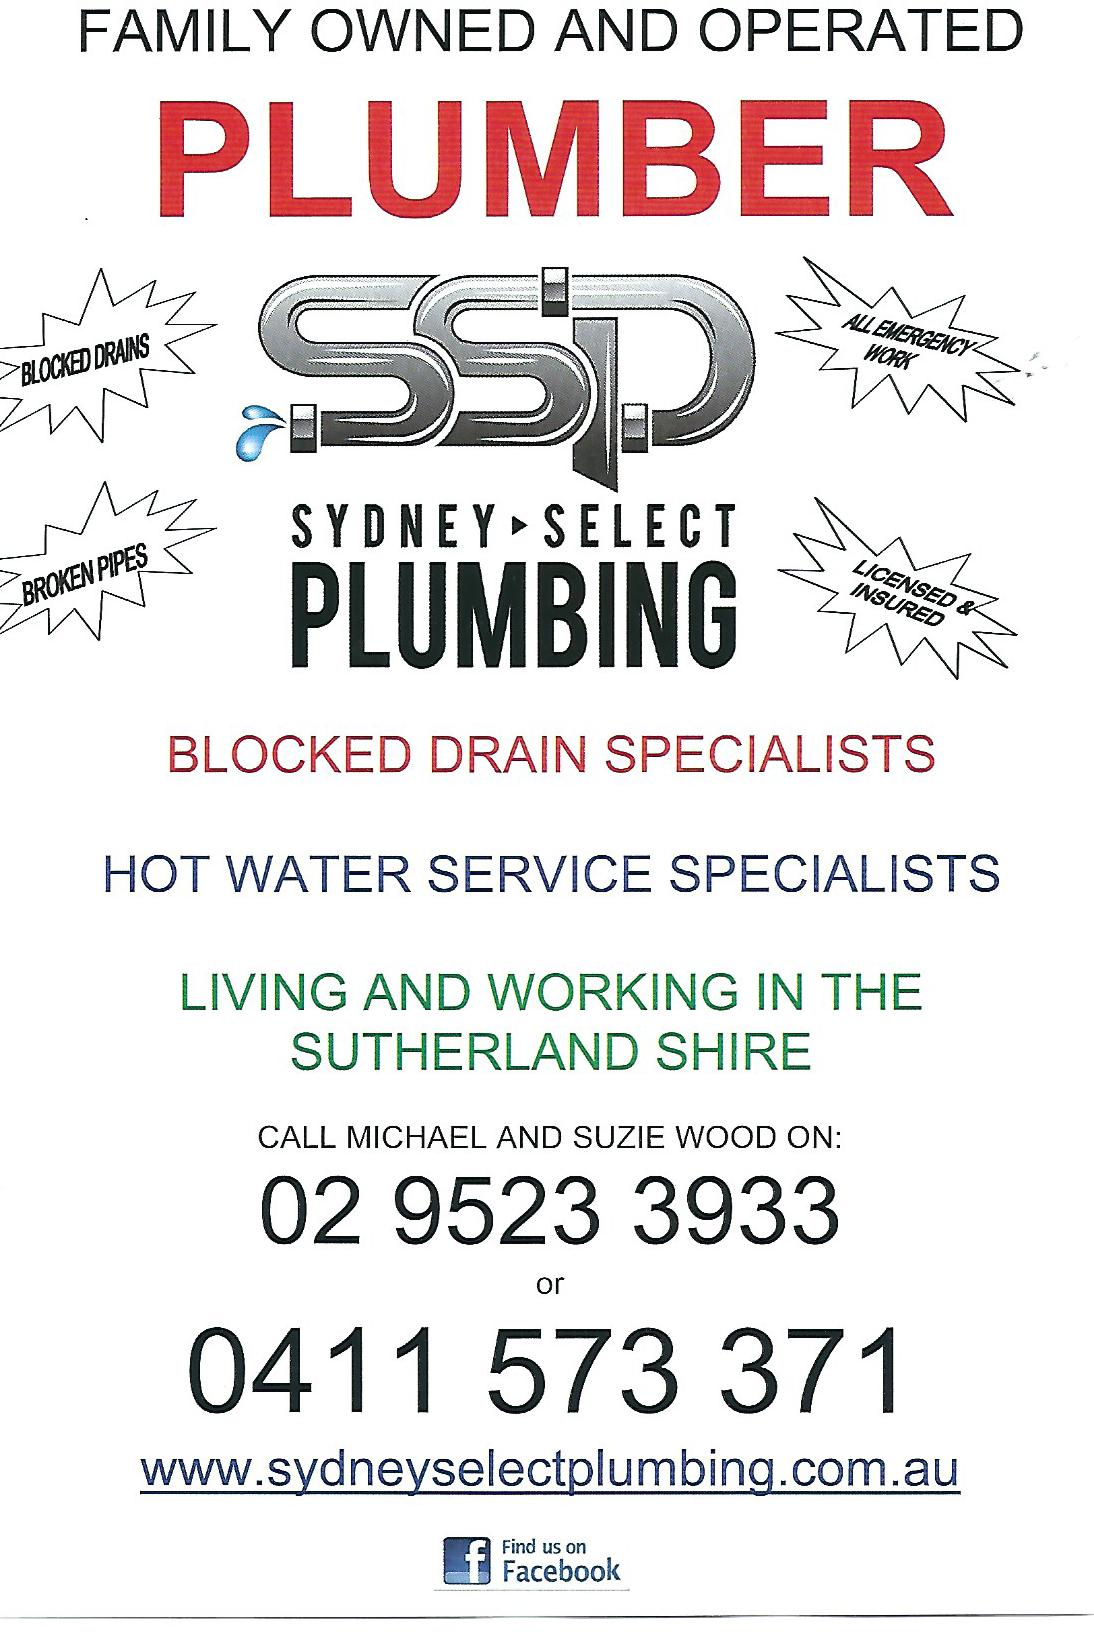 Example Mailbox drop from a Sutherland Shire Plumber